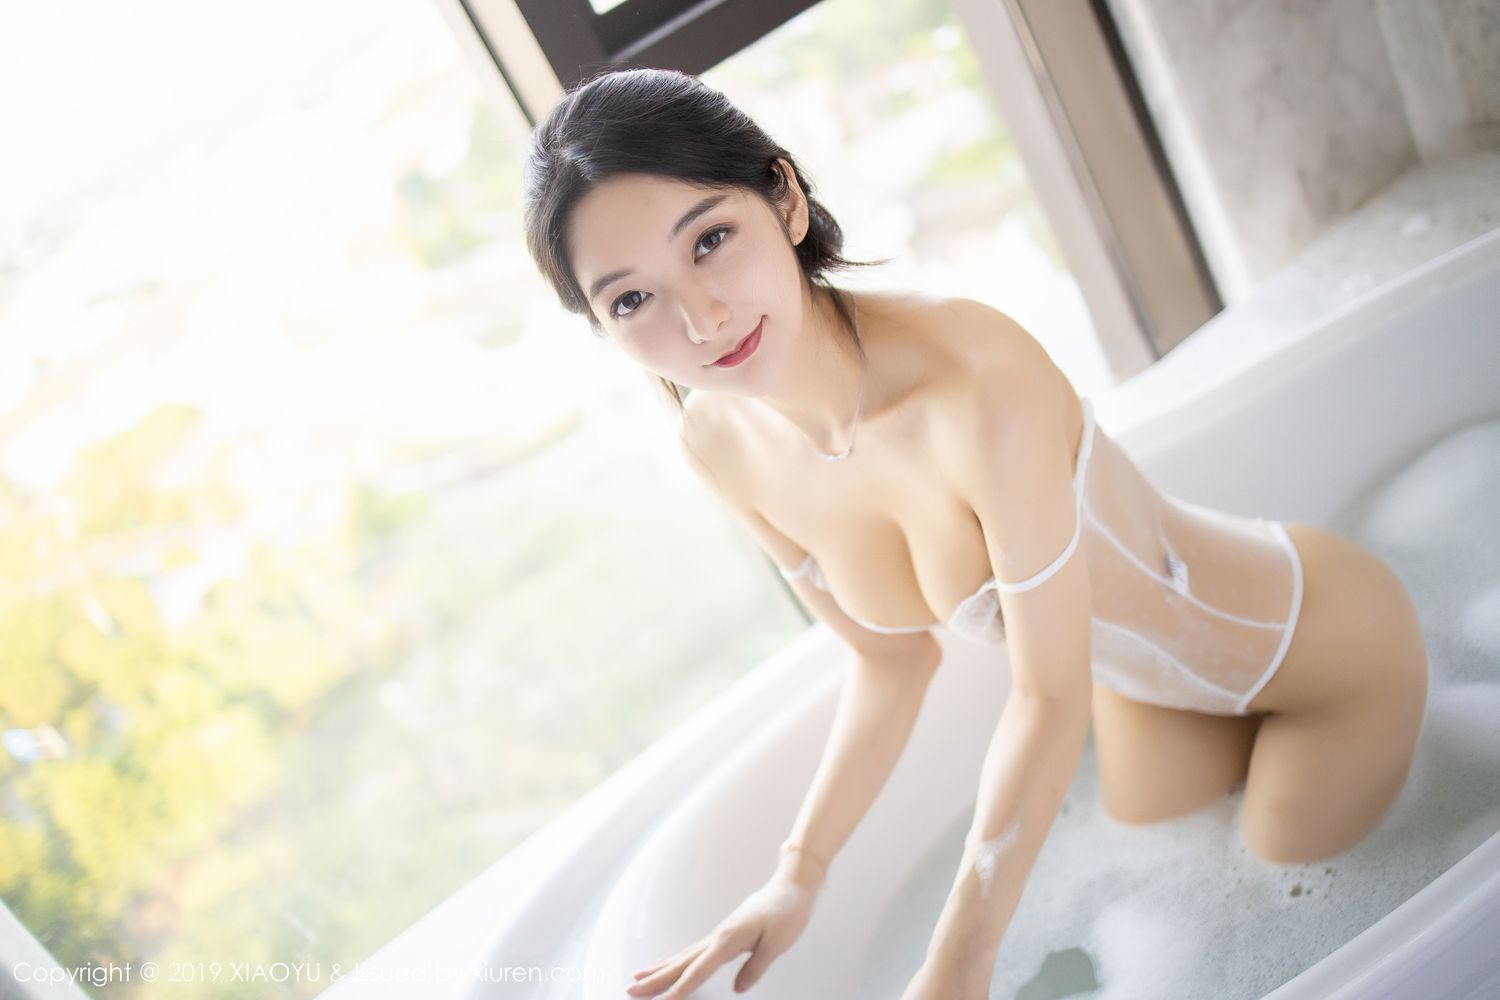 [XiaoYu] Vol.223 Xiao Re Ba 63P, Di Yi, Tall, Wet, XiaoYu